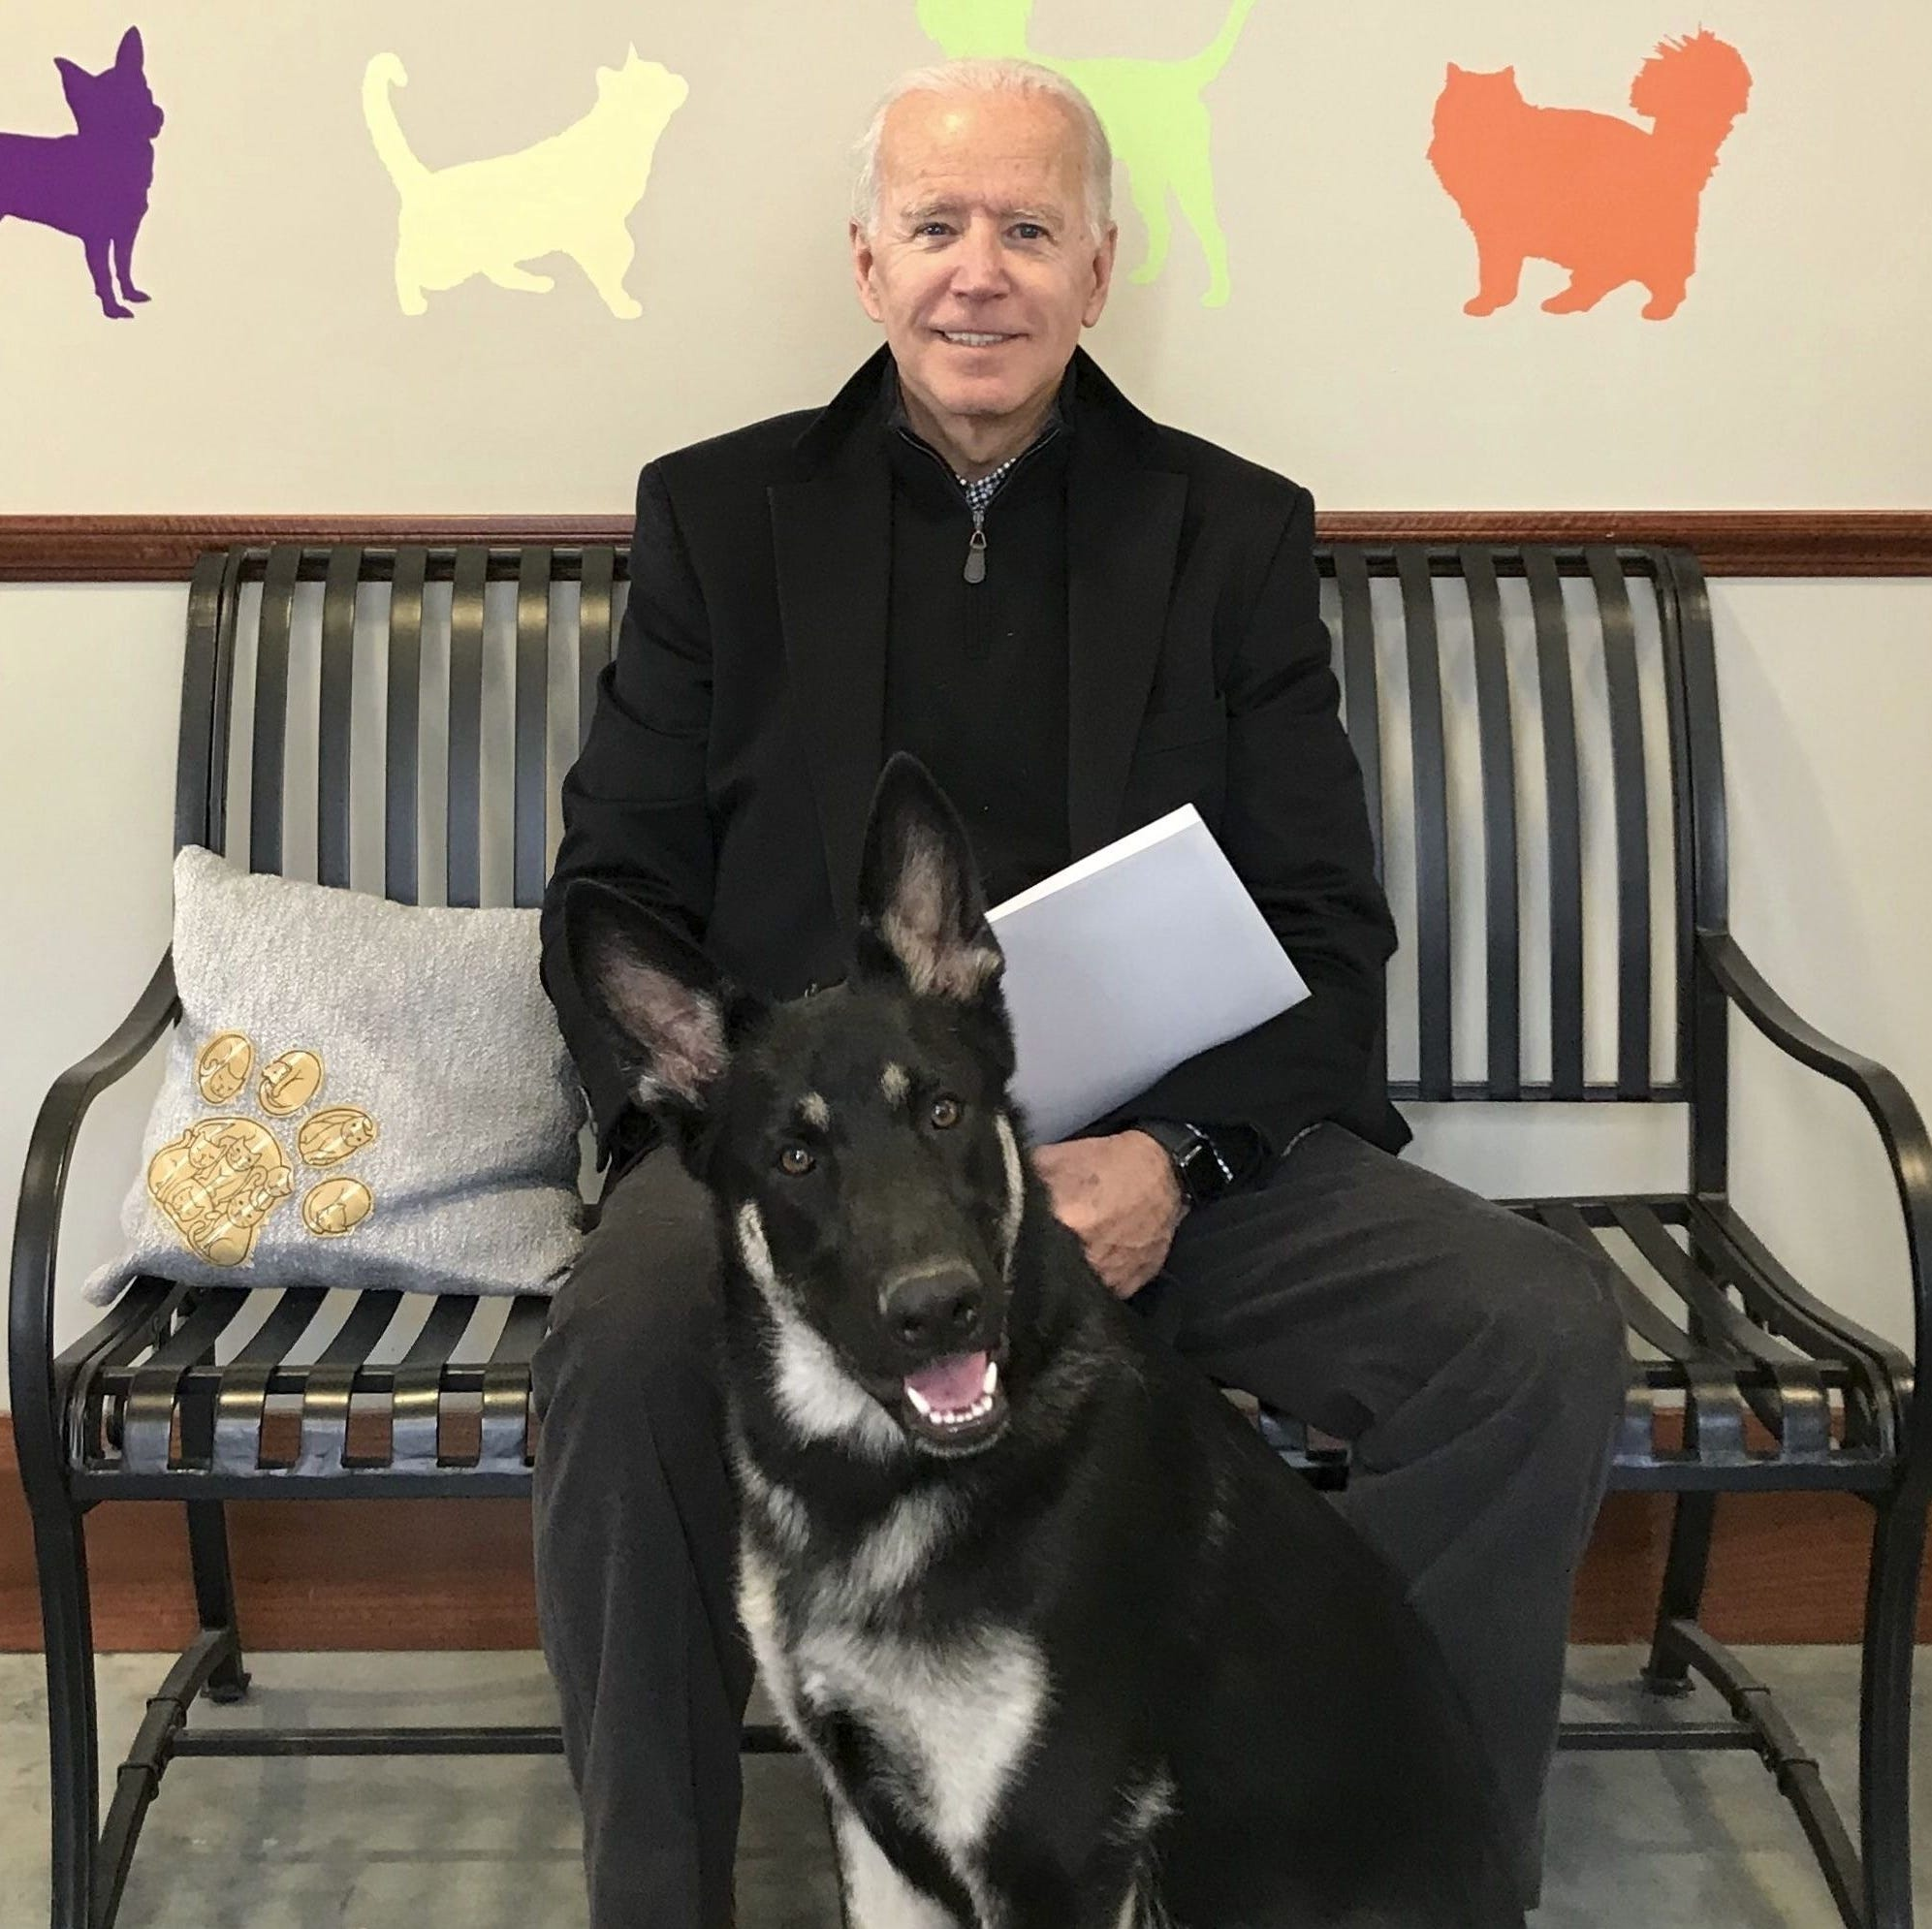 Joe and Jill Biden fostered Major, their German shepherd, before they decided to adopt him from the Delaware Humane Association.